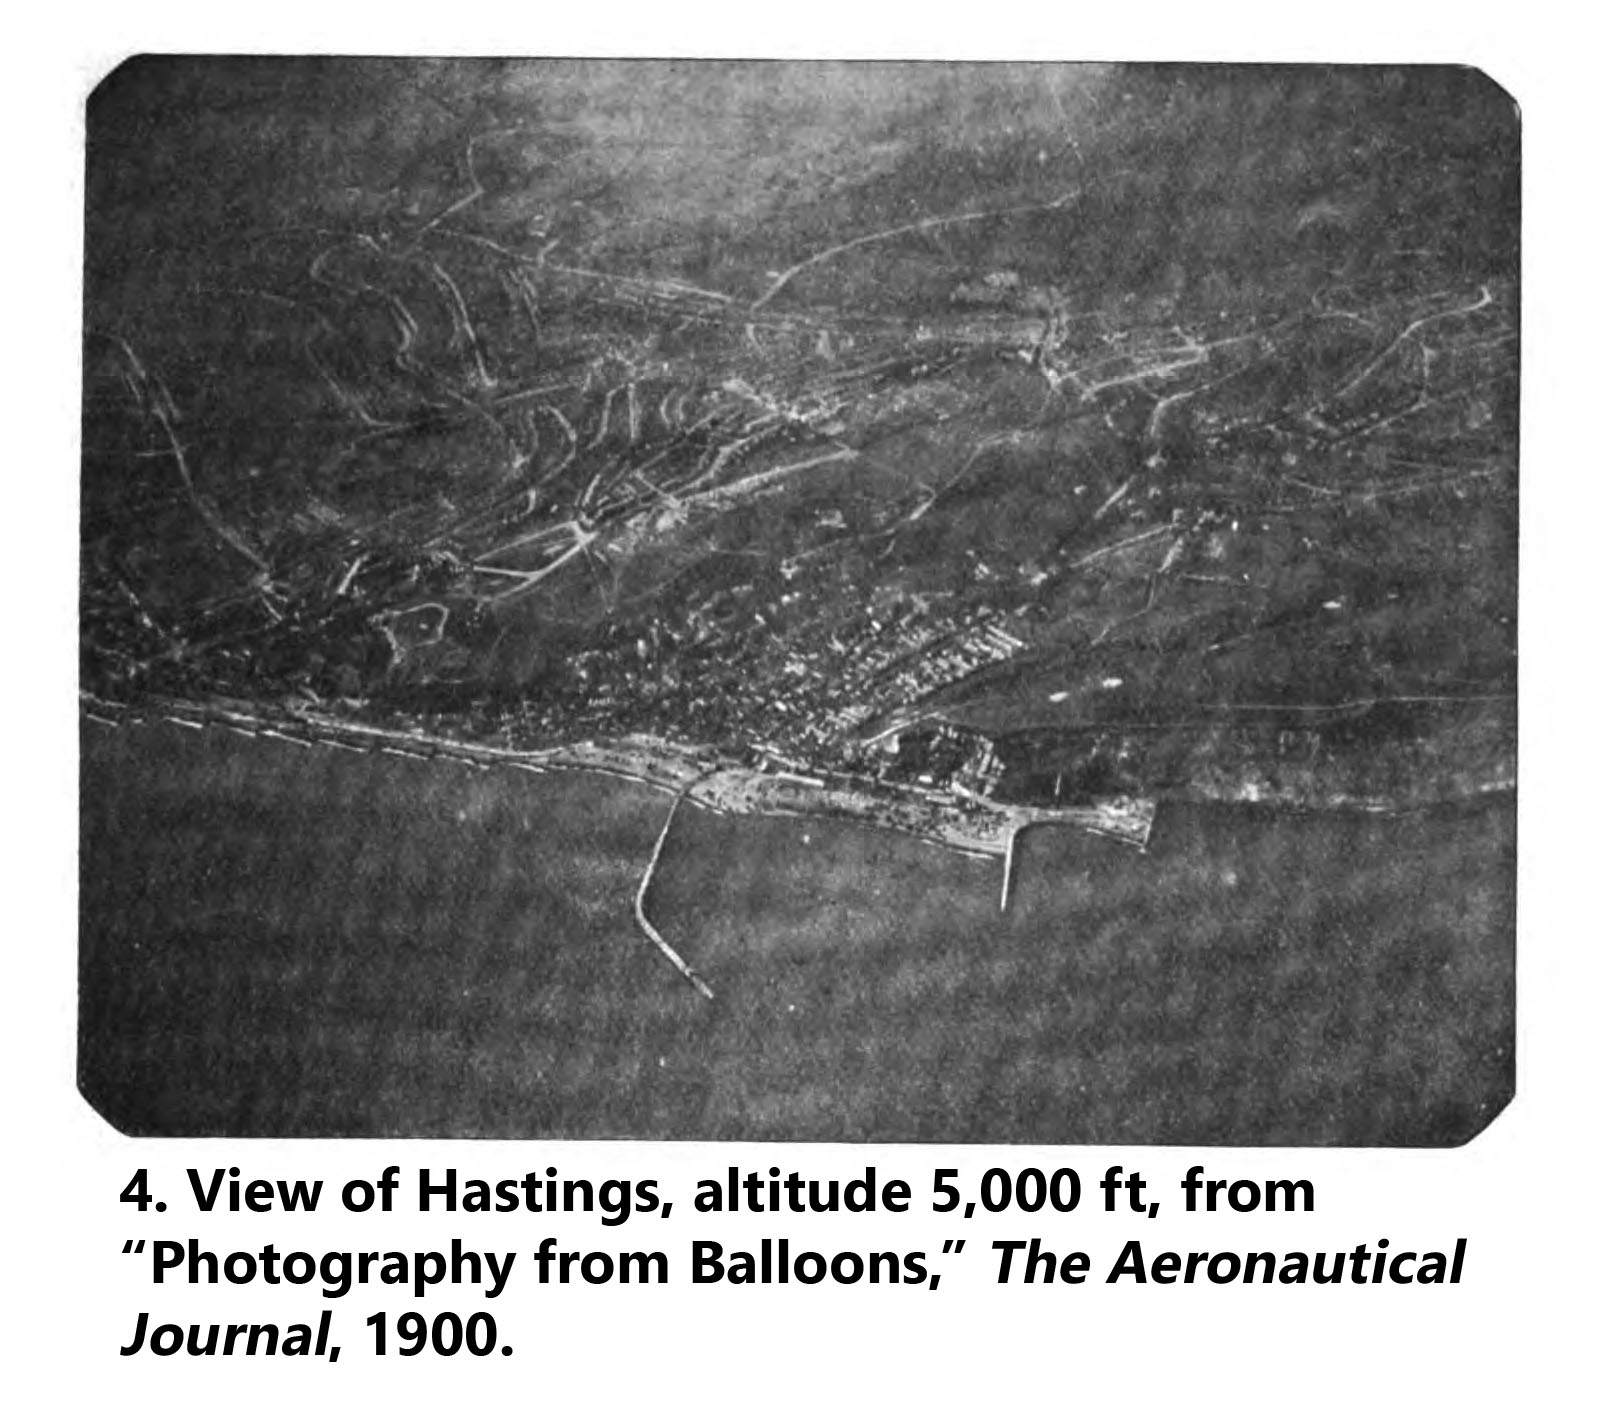 Aerial photo of Hastings, taken from 5,000 ft, 1900